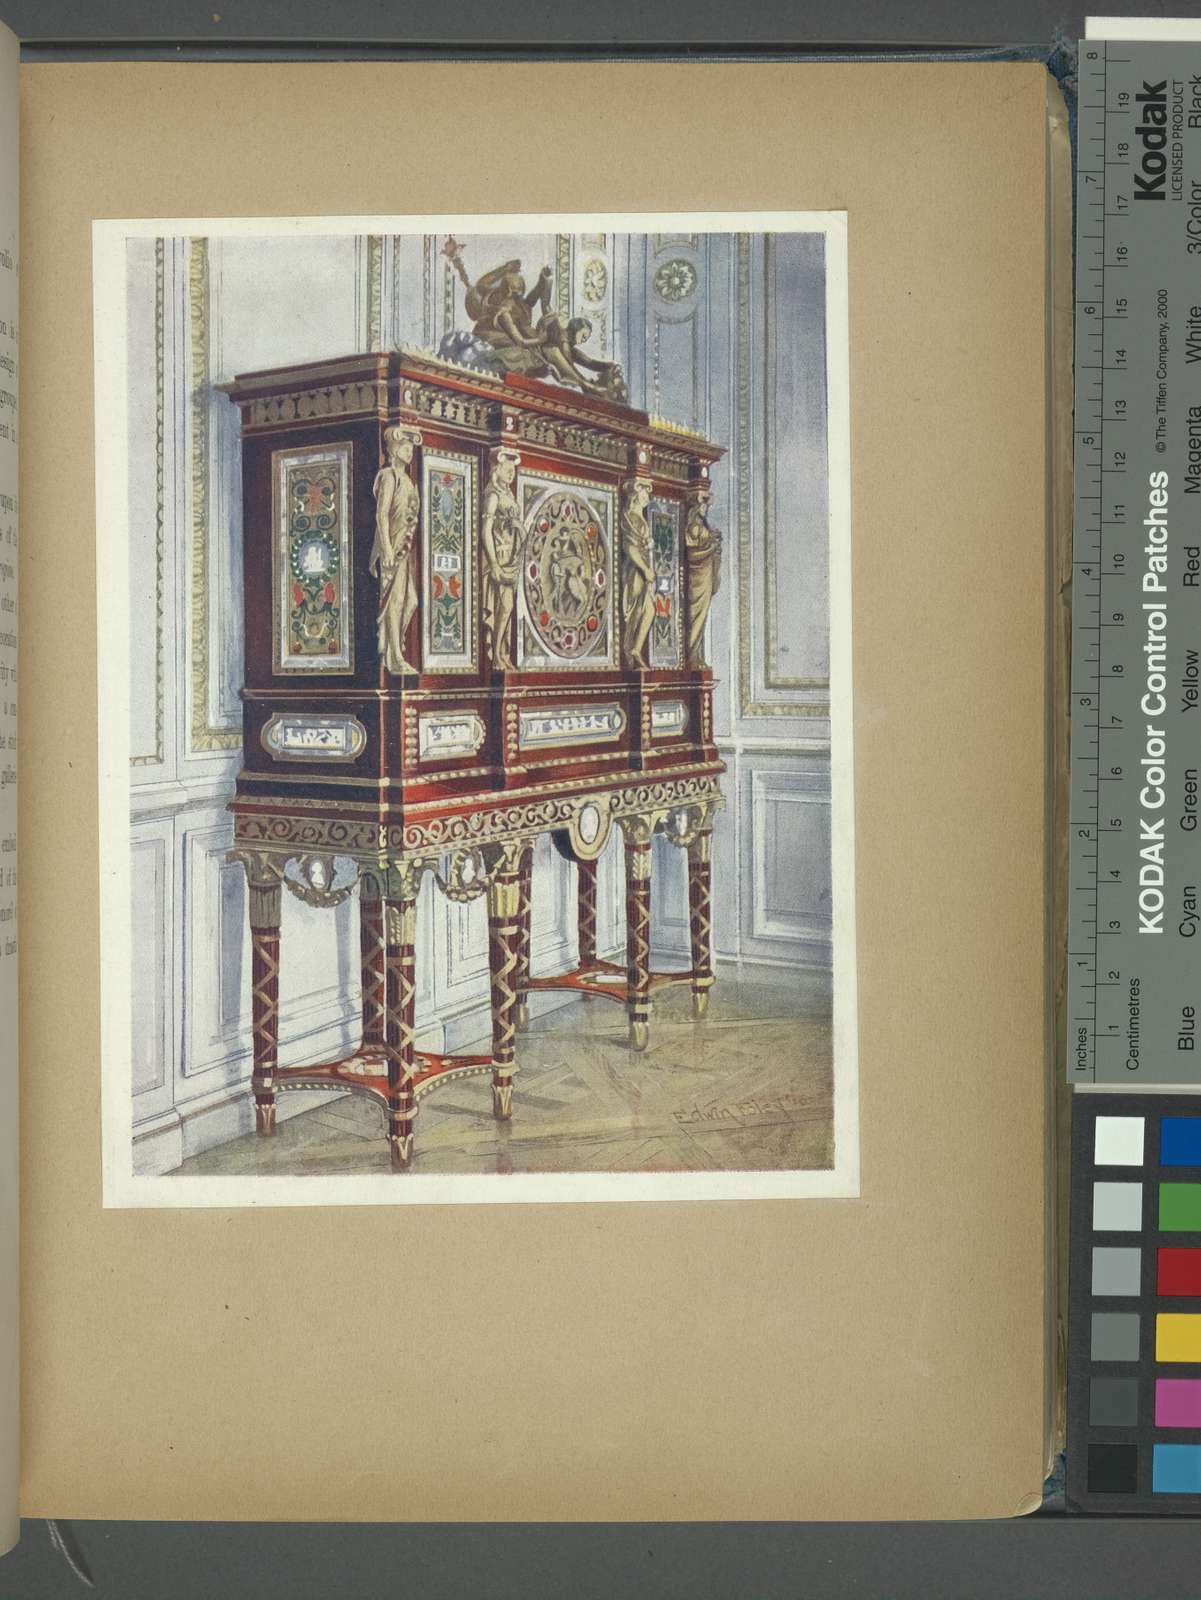 Jewel cabinet of Queen Marie Antoinette, of mahogany, gilt, inlaid, carved, and with painted plaques. French Louis XVI. Period, Pompeian-classic influence, ca. 1787. Palace of Versailles, France.